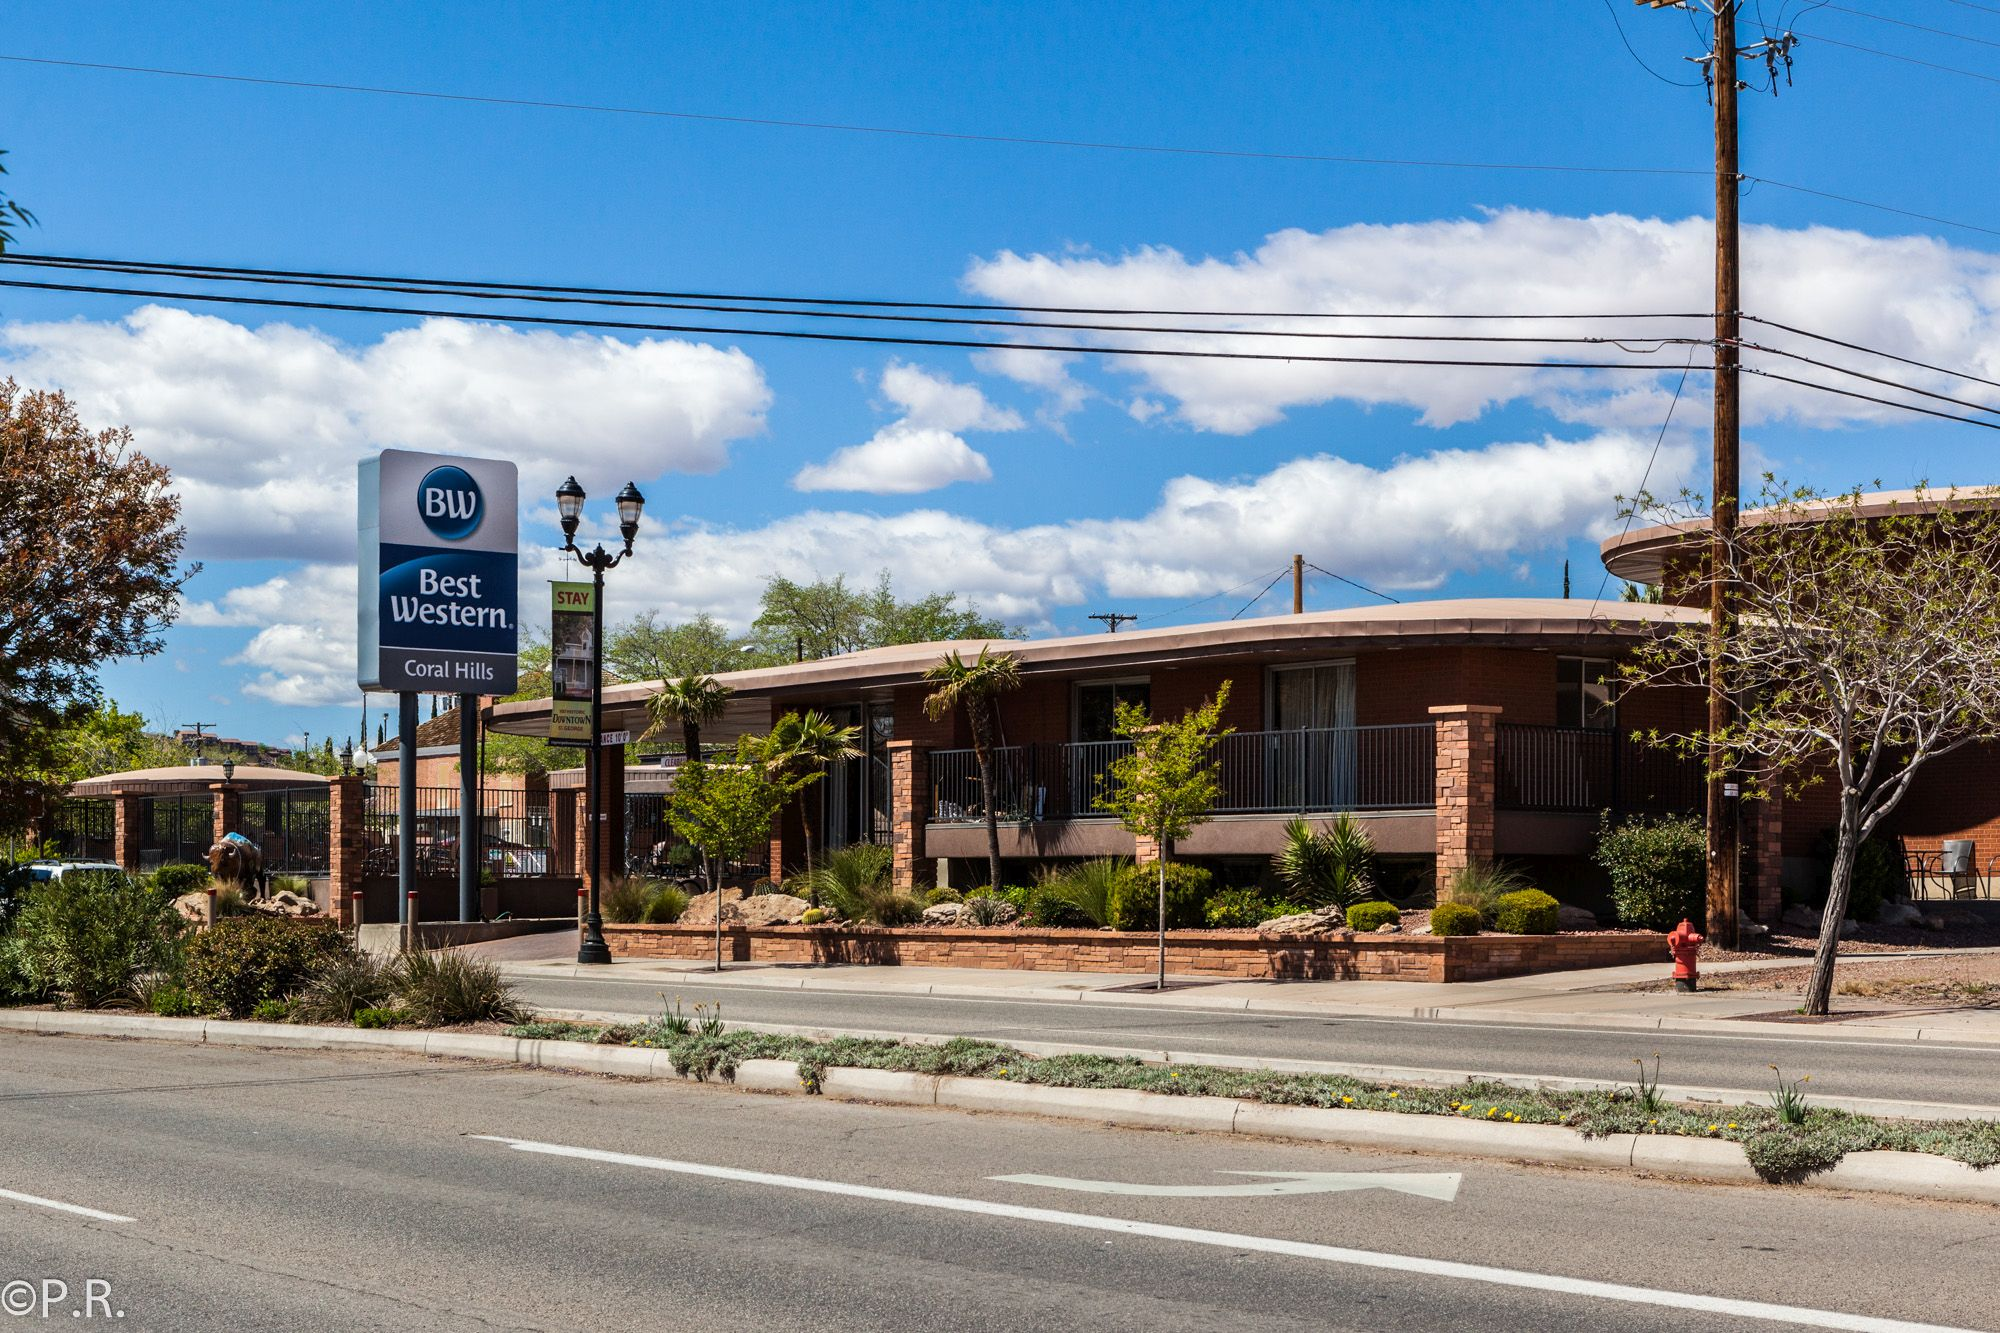 Hotel Review: Best Western Coral Hills in St. George, UT